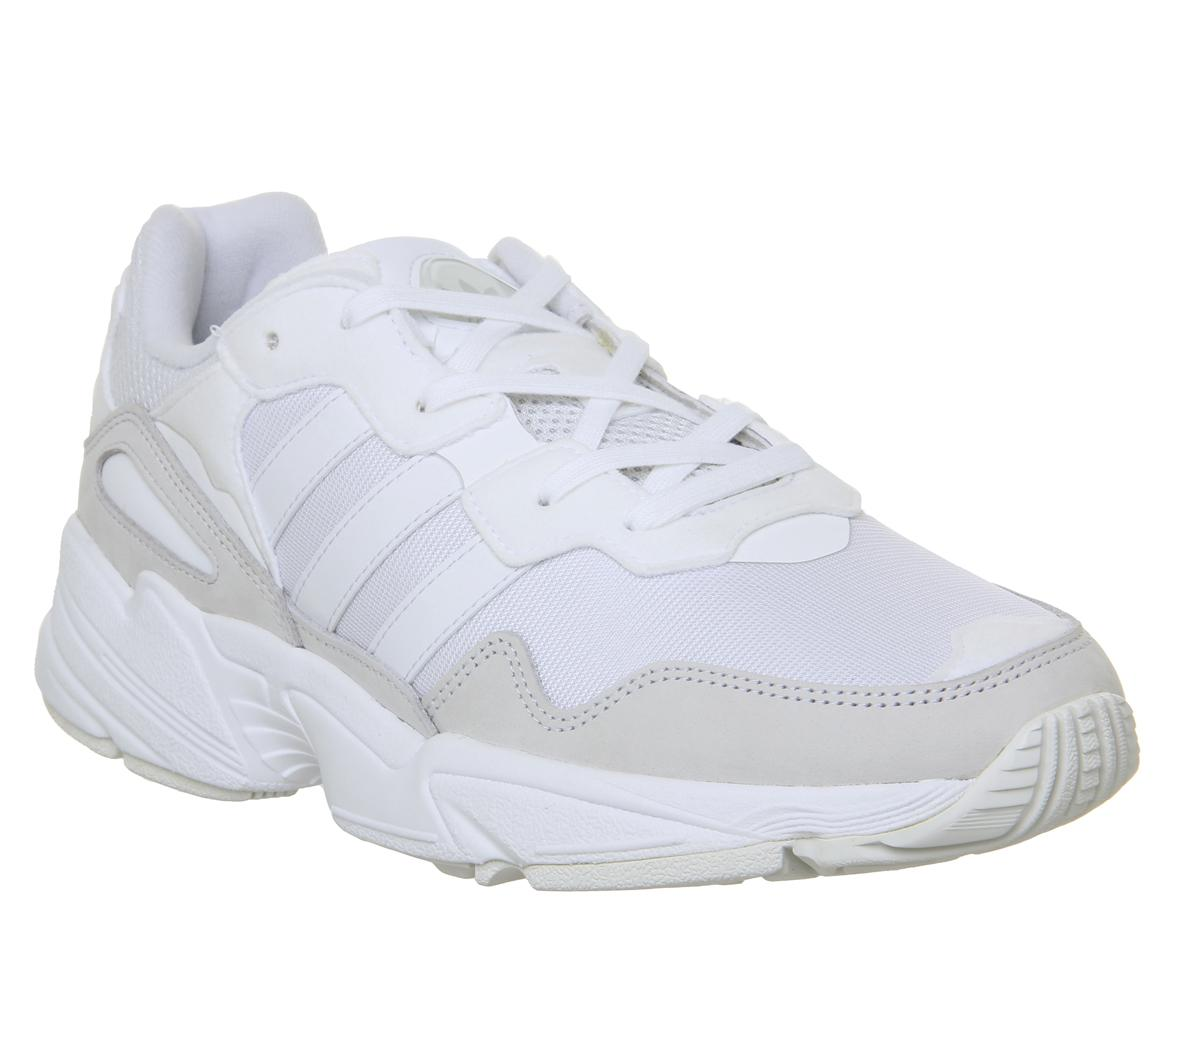 adidas Yung 96 Trainers White Grey